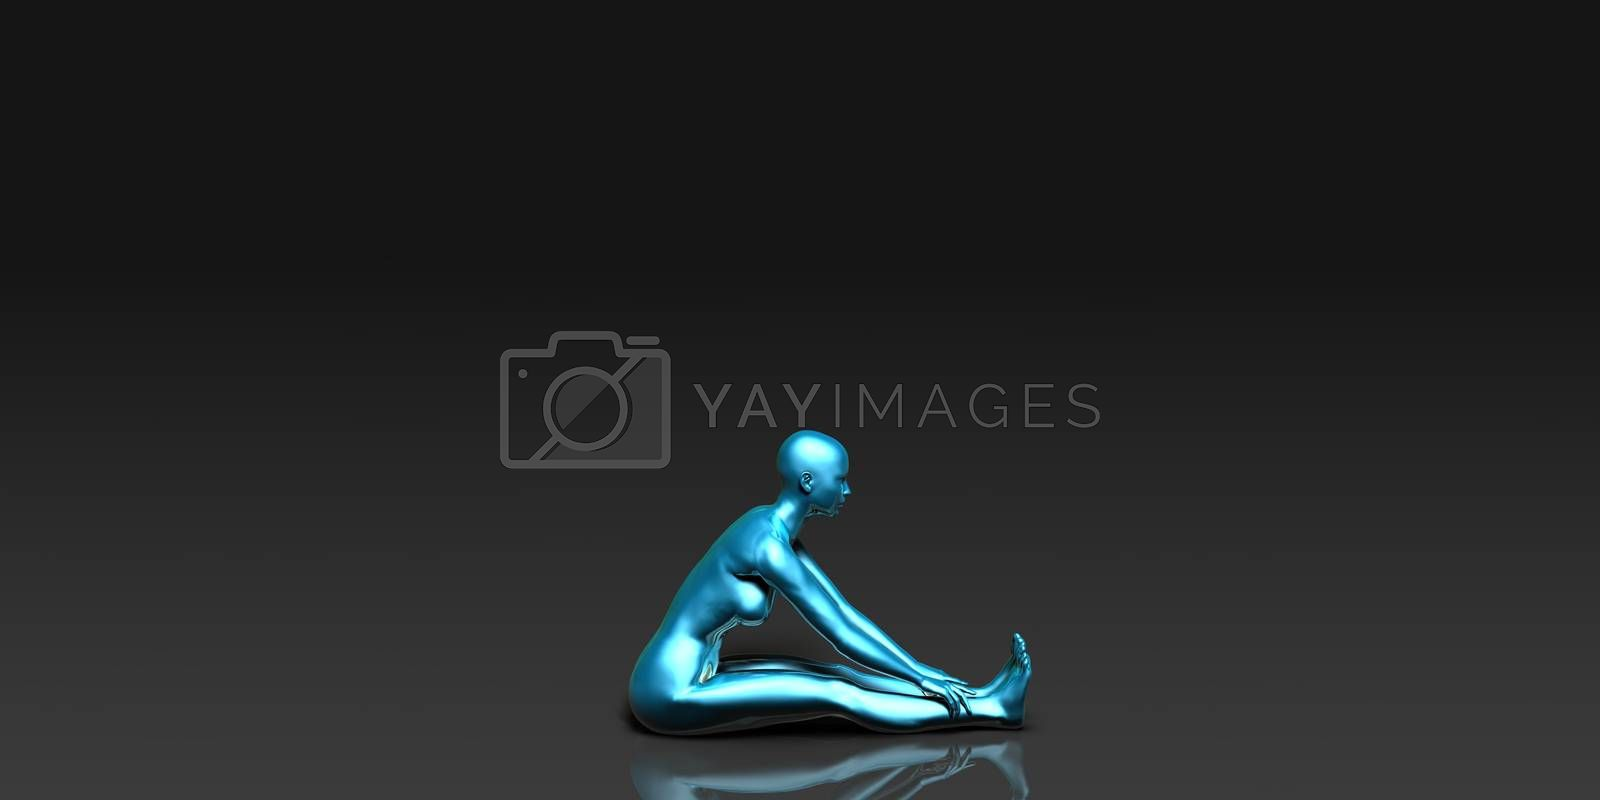 Yoga Class, the Seated Forward Bend Basic Pose Stance